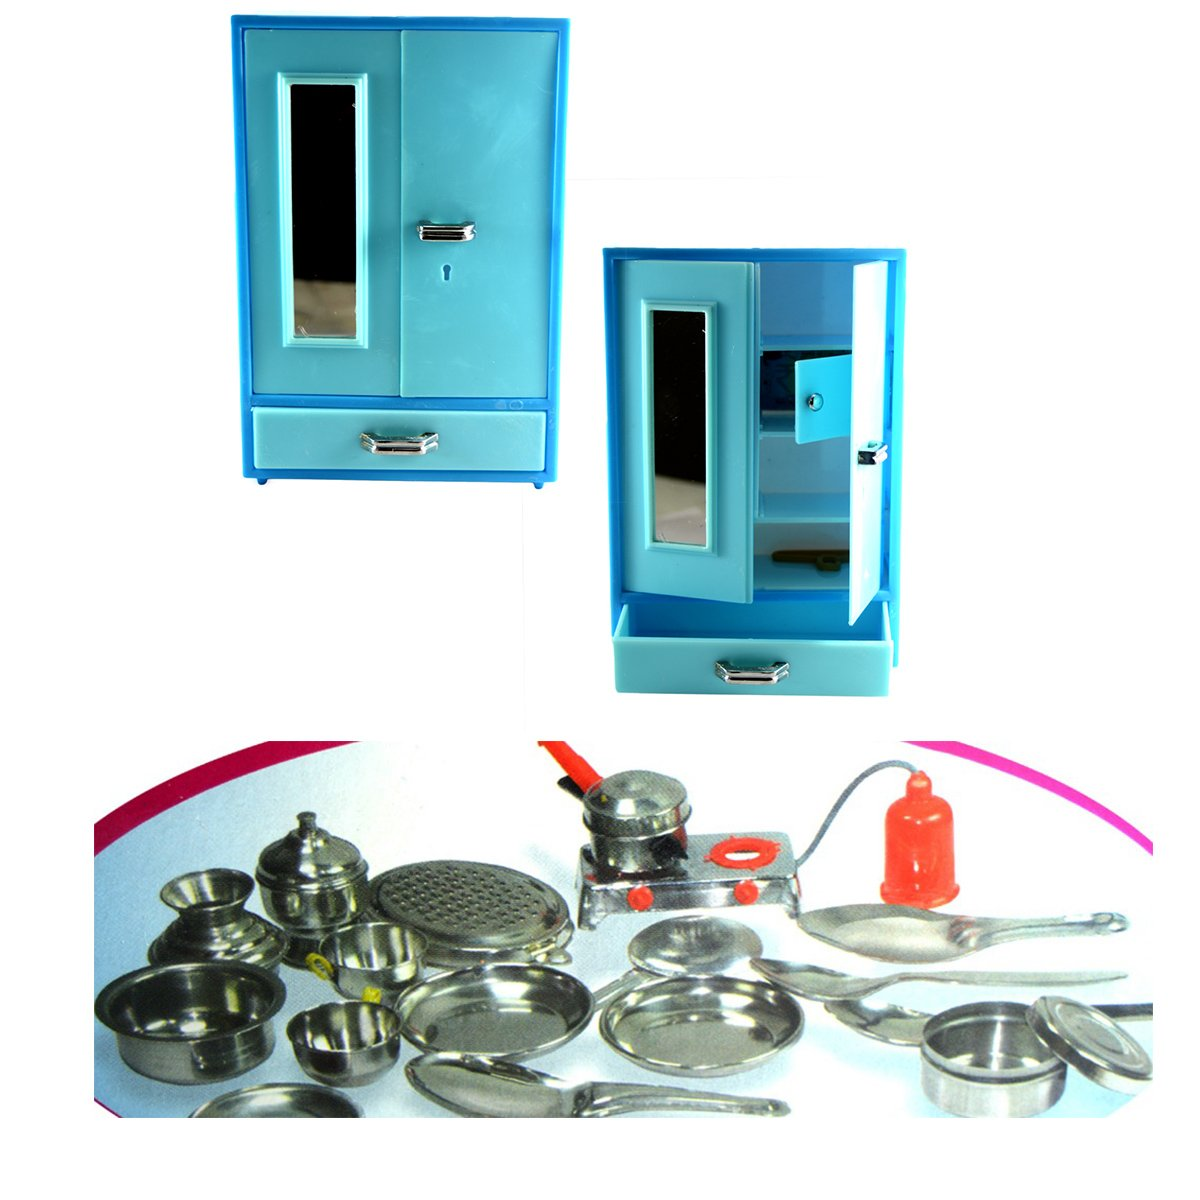 Buy sunny toyz Super Plastic Cupboard n Vessels Set Online at Low ...